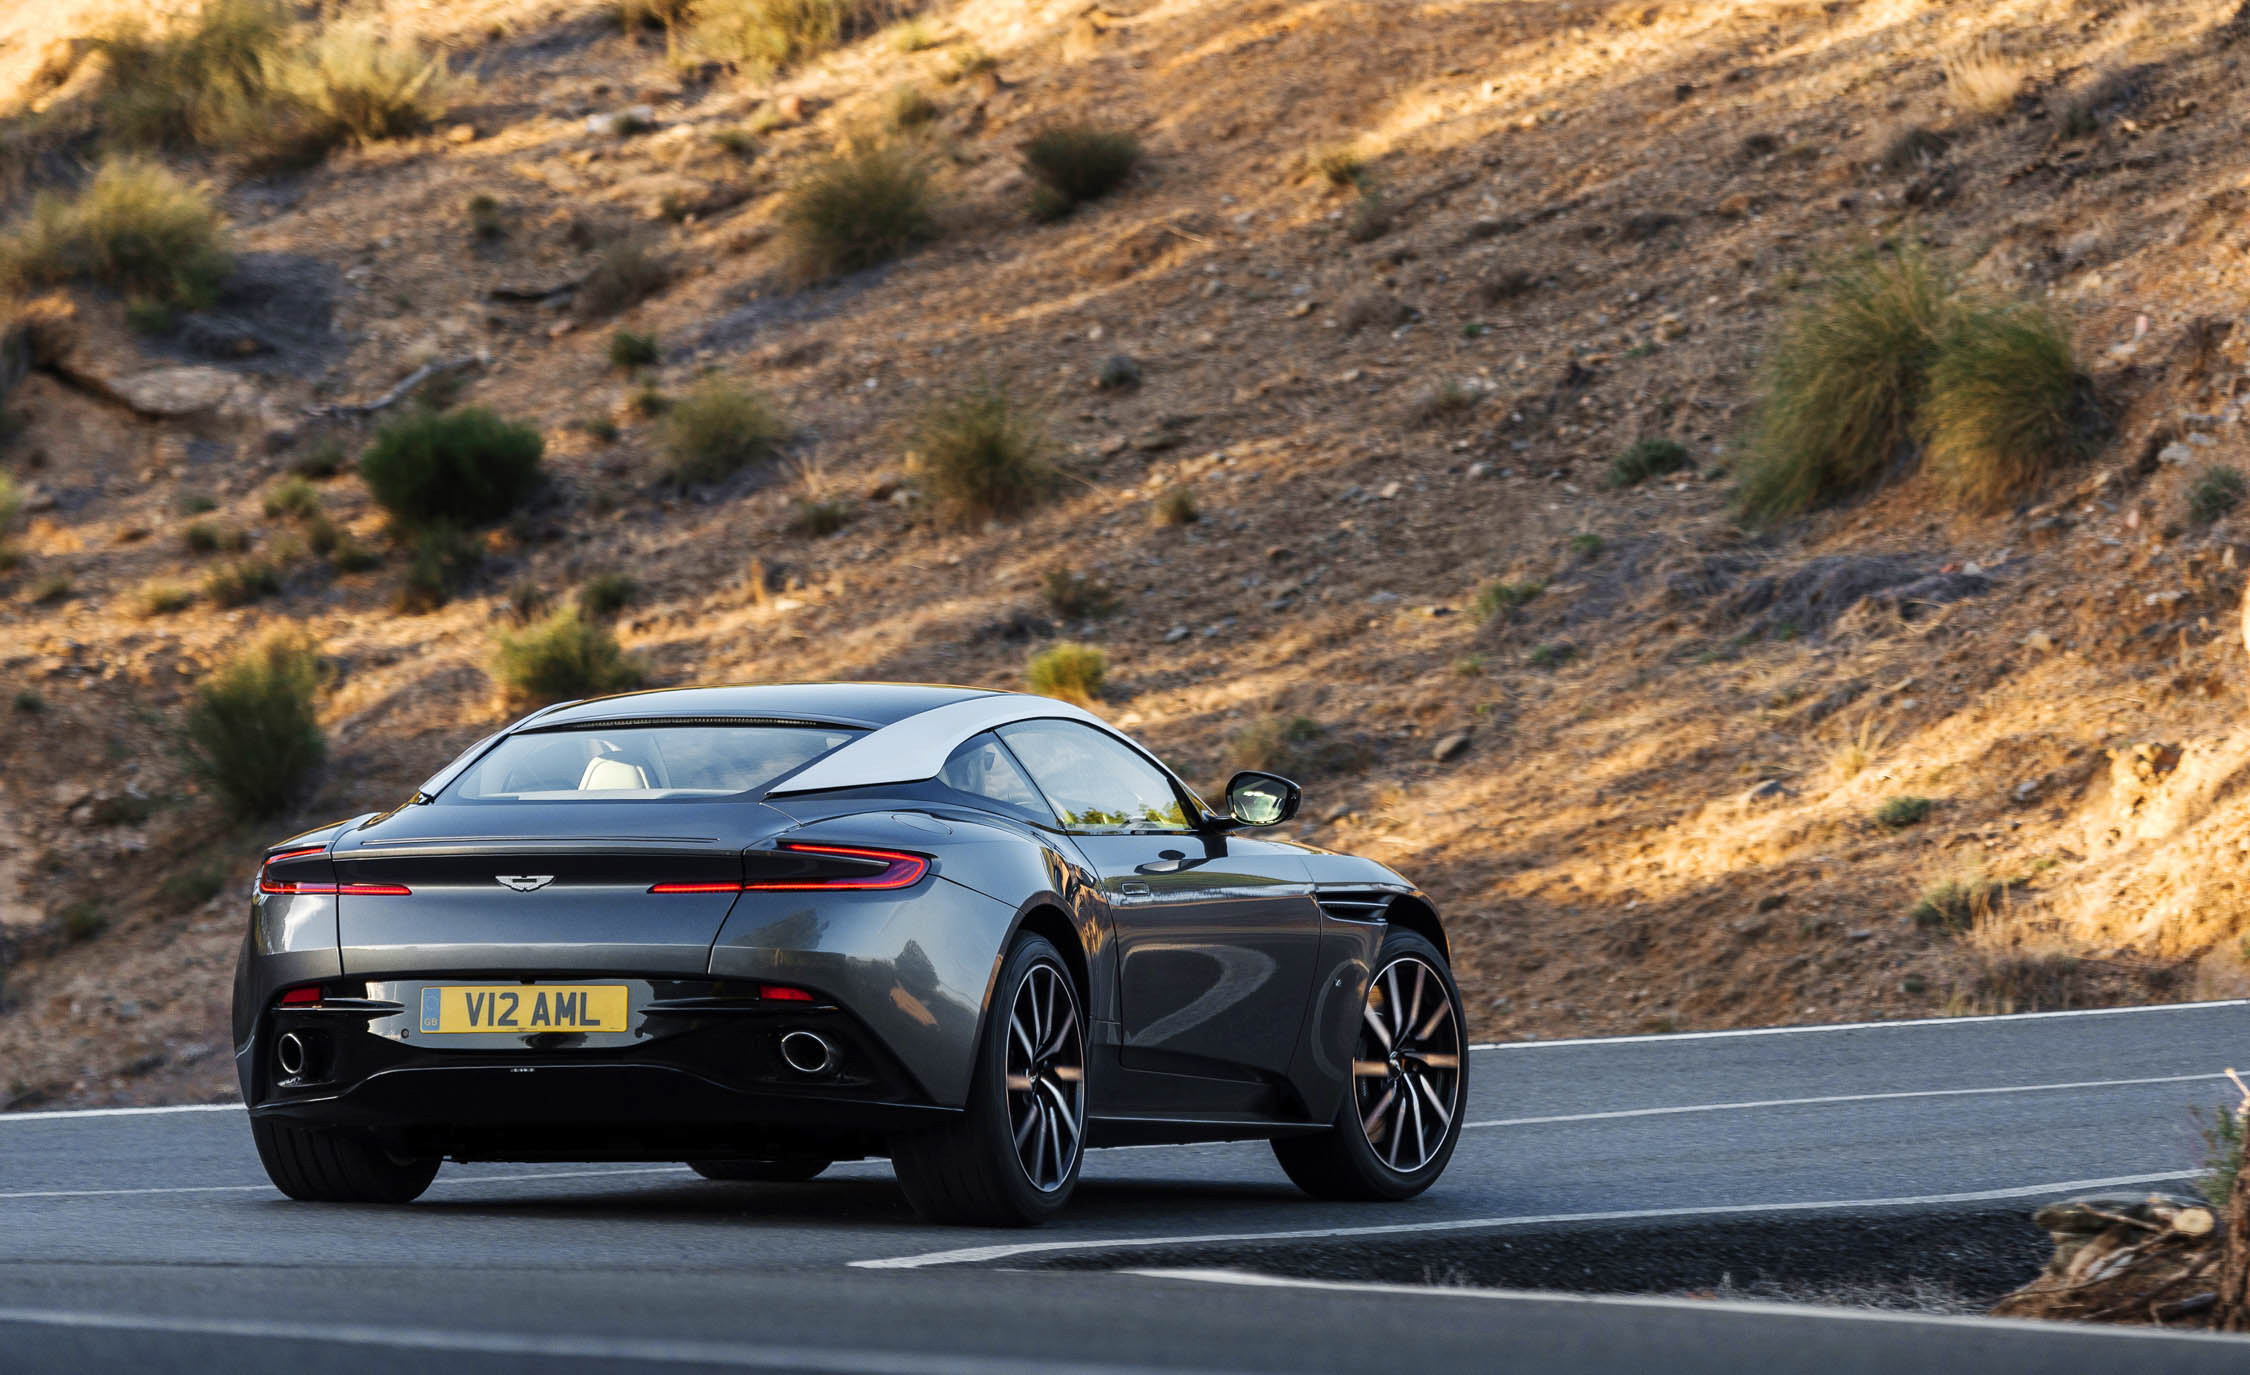 2017 Aston Martin Db11 Test Drive Rear View (Photo 18 of 22)